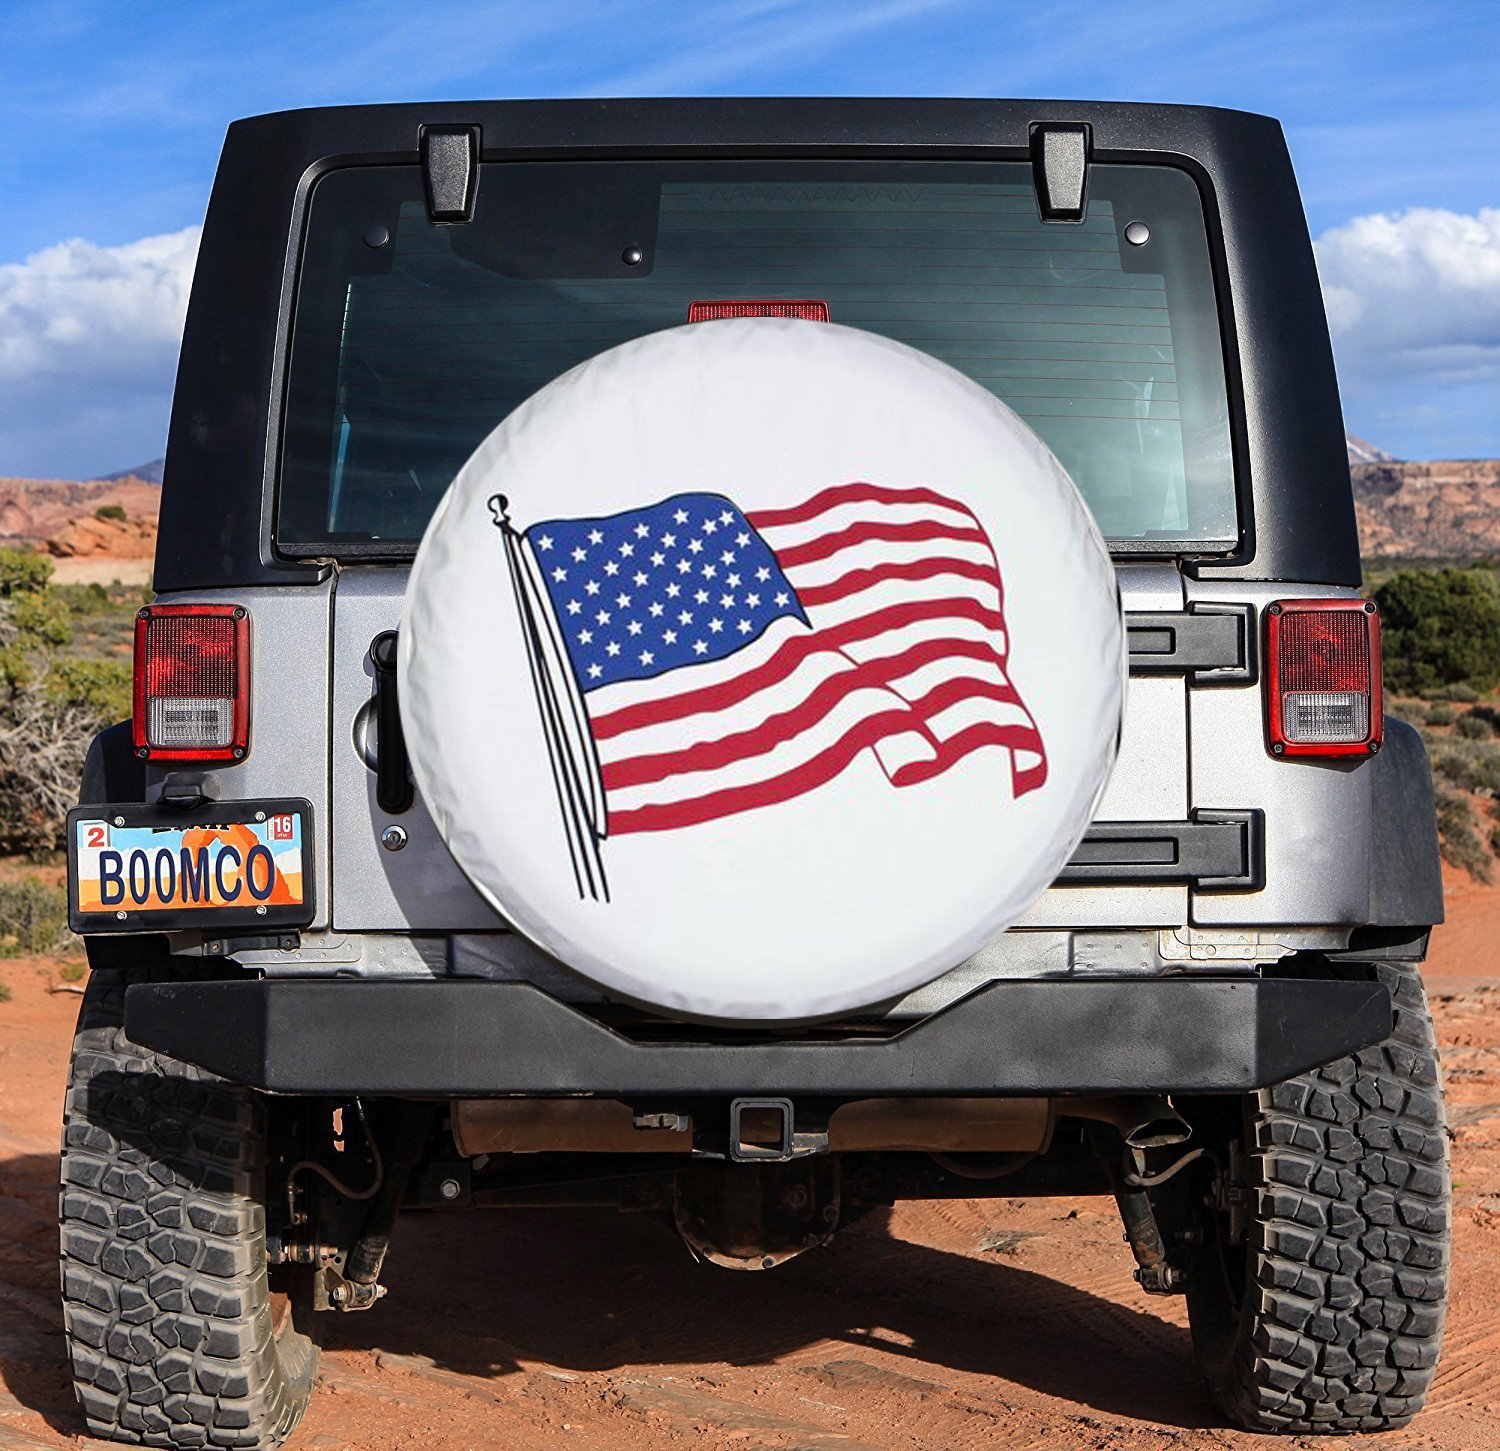 Spare Tire Cover 17 inch American Flag White Waterproof Universal Wheel Tire Covers for RV Jeep Trailer Honda CRV Toyota RAV4 SUV Camper (17'' for diameter 31''-33'') by Tsofu (Image #4)